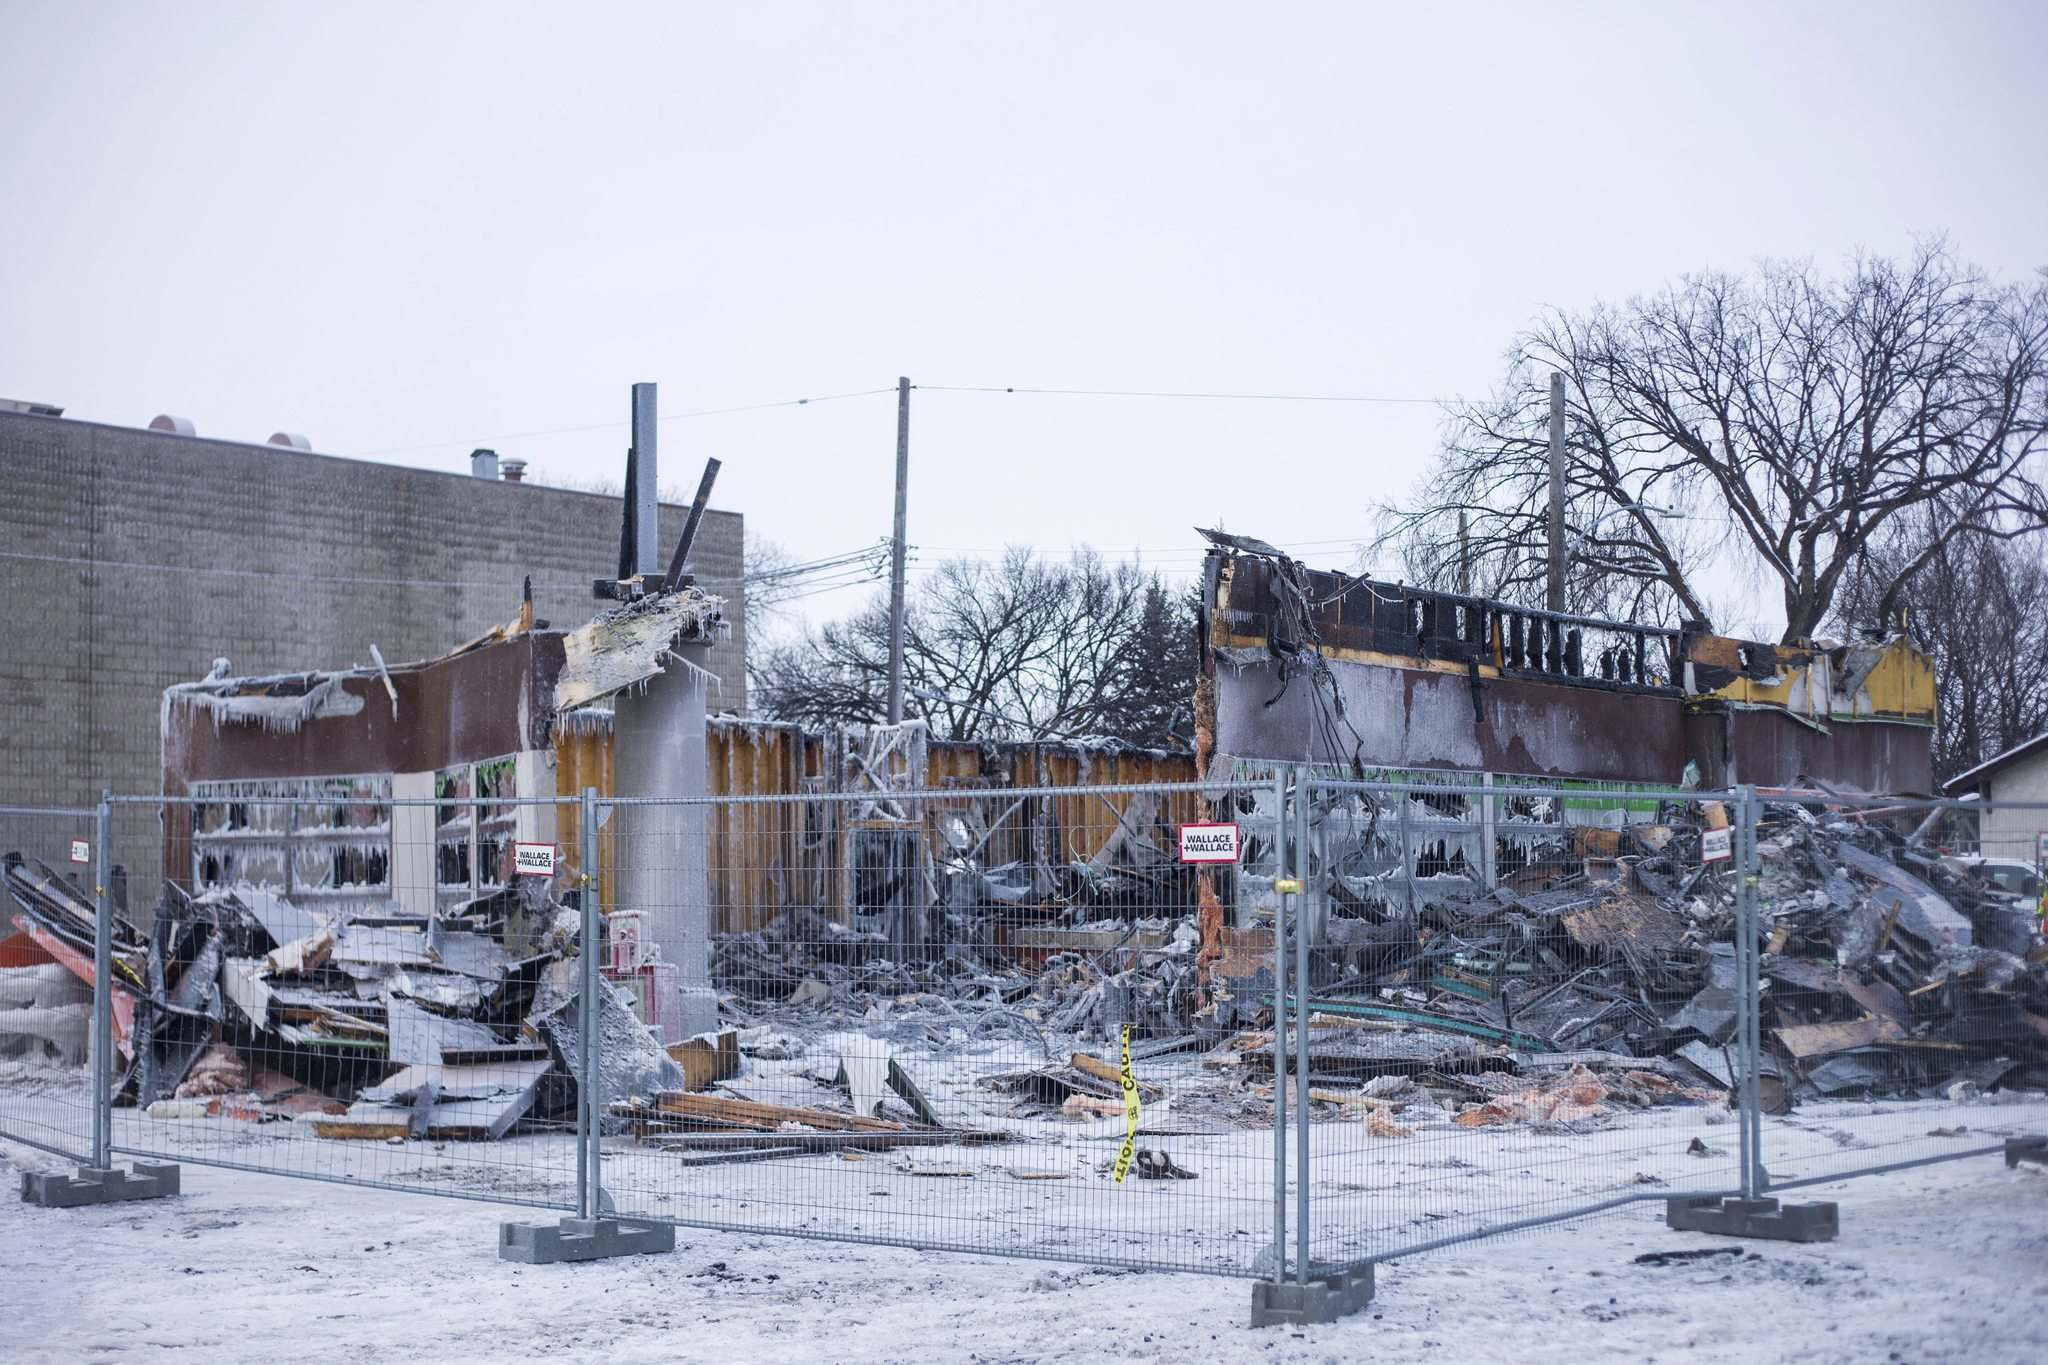 MIKAELA MACKENZIE / WINNIPEG FREE PRESS</p><p>The burned-out A&W at Main and Inkster.</p>